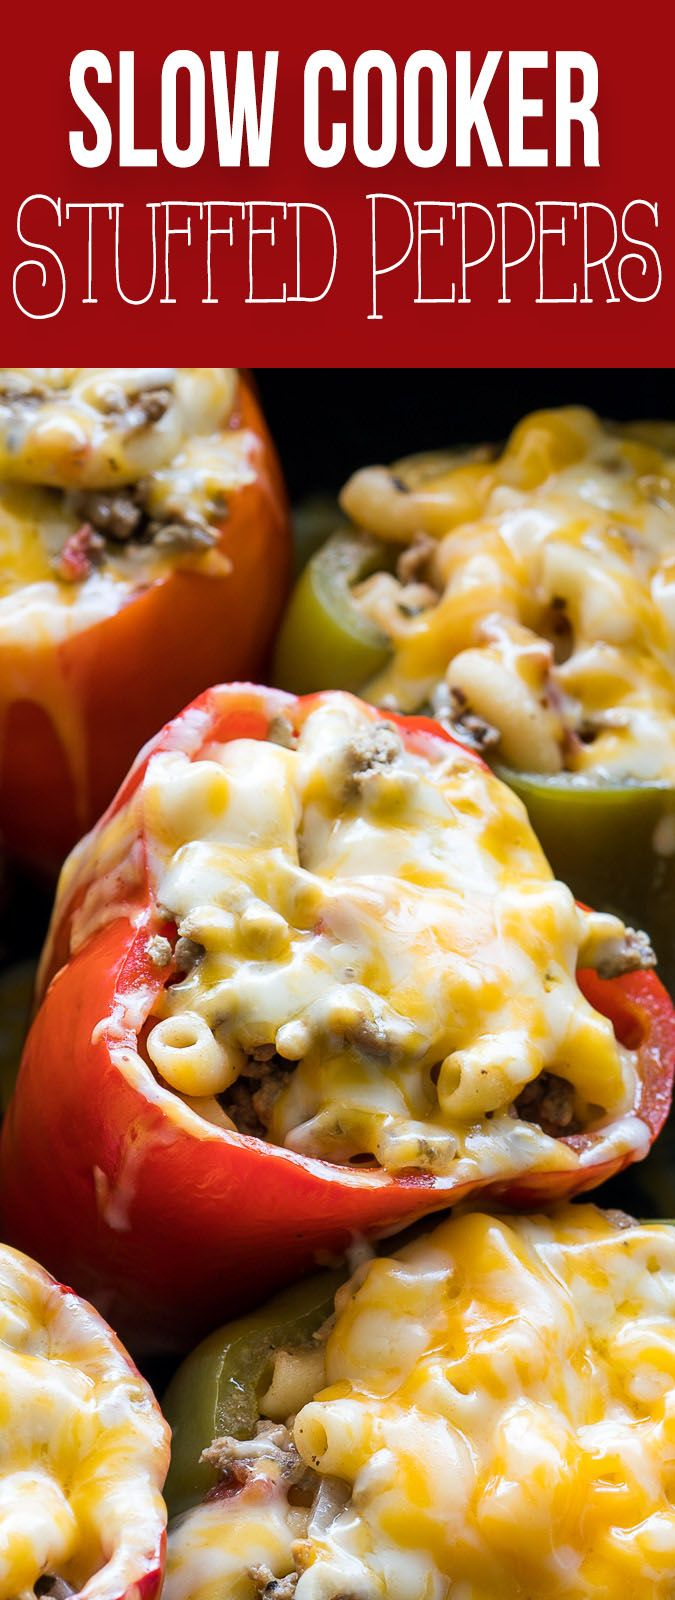 Slow Cooker Beef Macaroni Stuffed Peppers Recipe Stuffed Peppers Slow Cooker Stuffed Peppers Slow Cooker Recipes